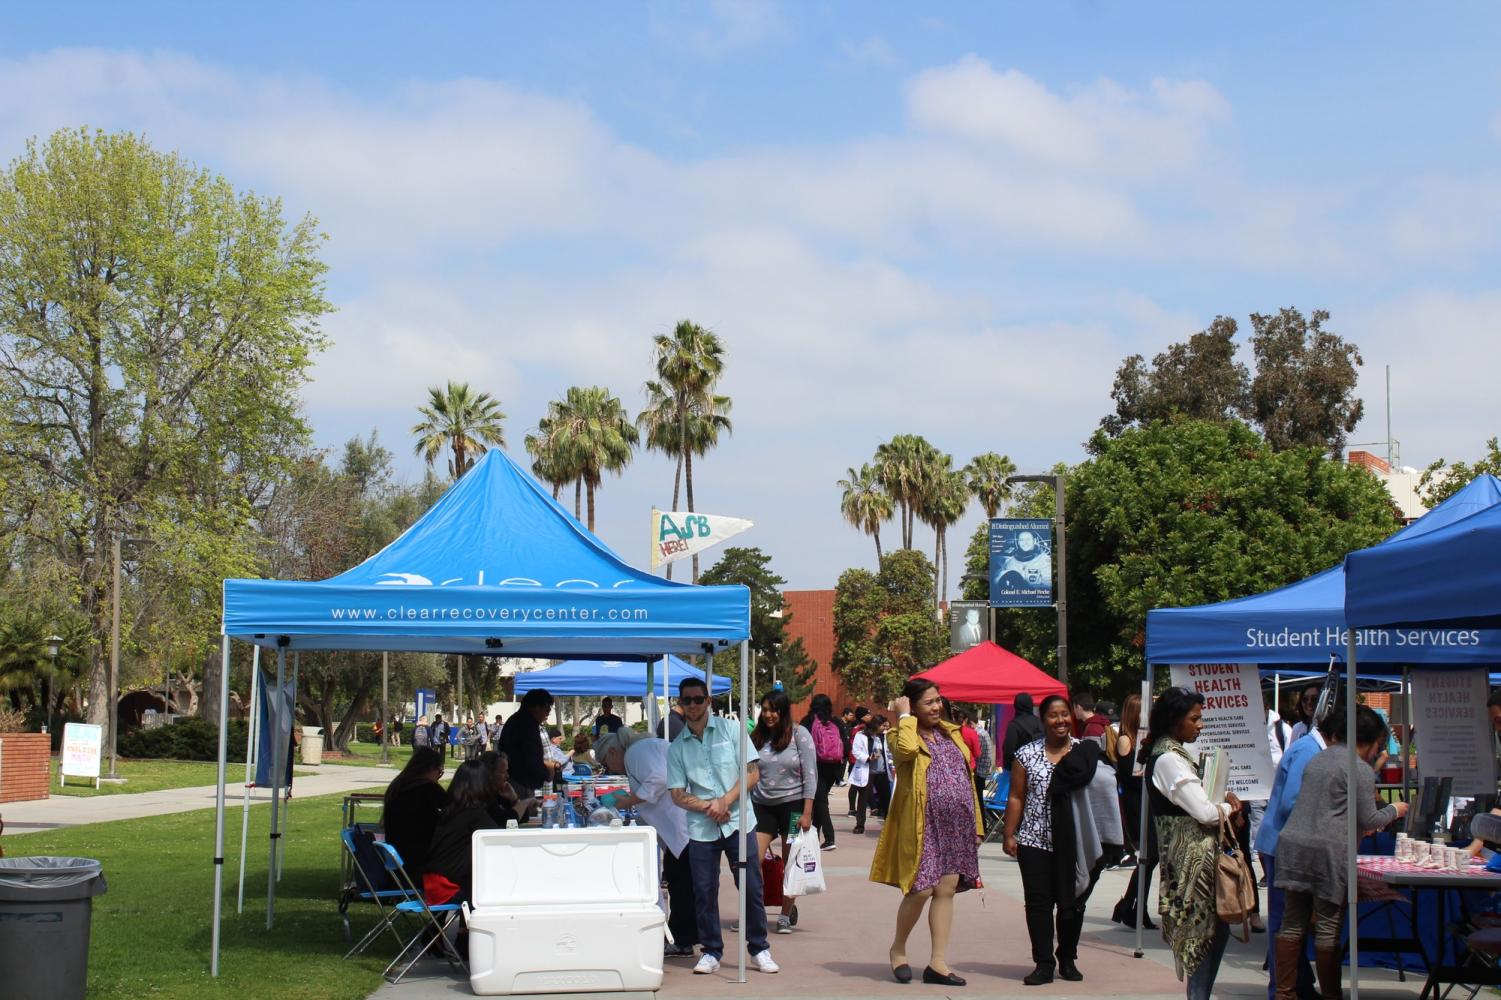 Spring Health Fair taking place on Library Lawn today until 2 p.m.